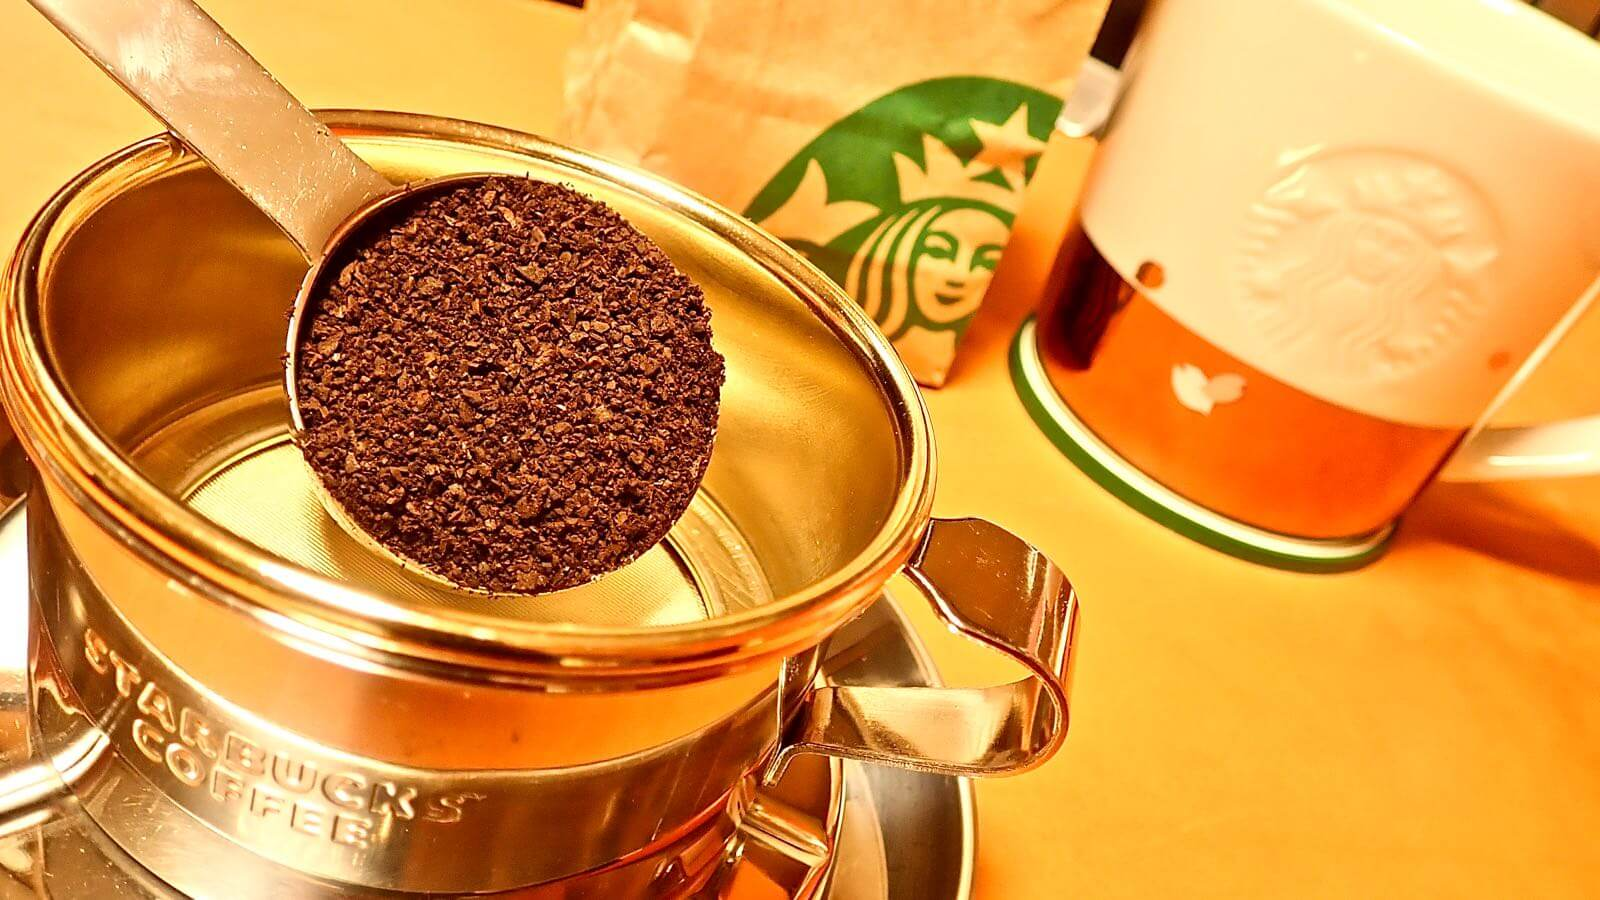 0014 Starbucks Stainless Dripper How to make delicious coffee 06